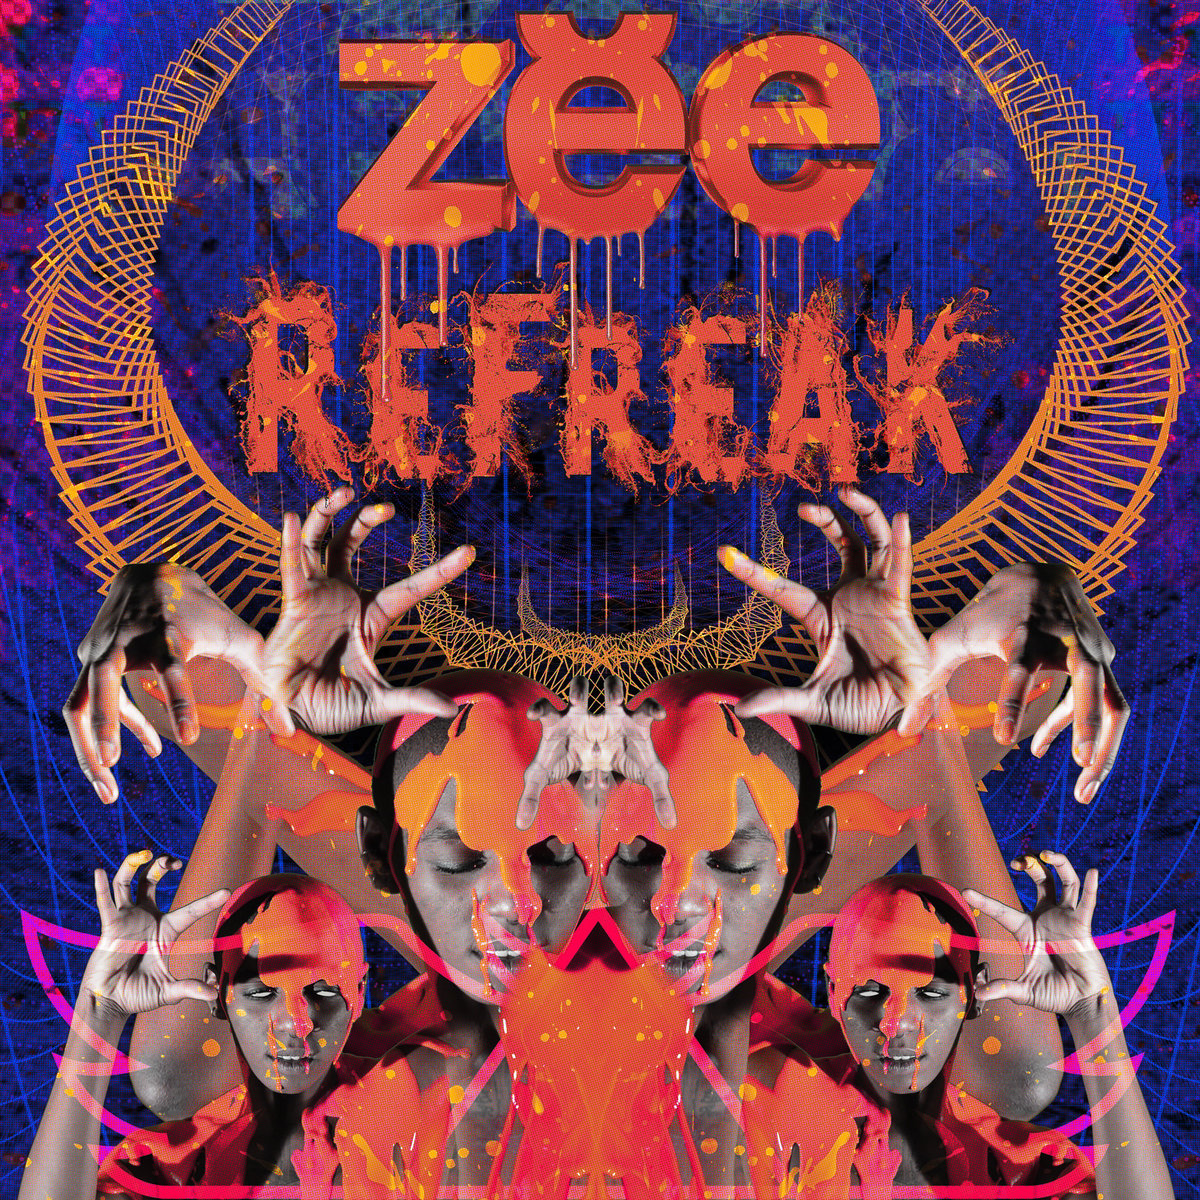 Zebbler Encanti Experience - Follow The Bubbles (SugarBeats Remix) @ 'ReFreak' album (electronic, bass)